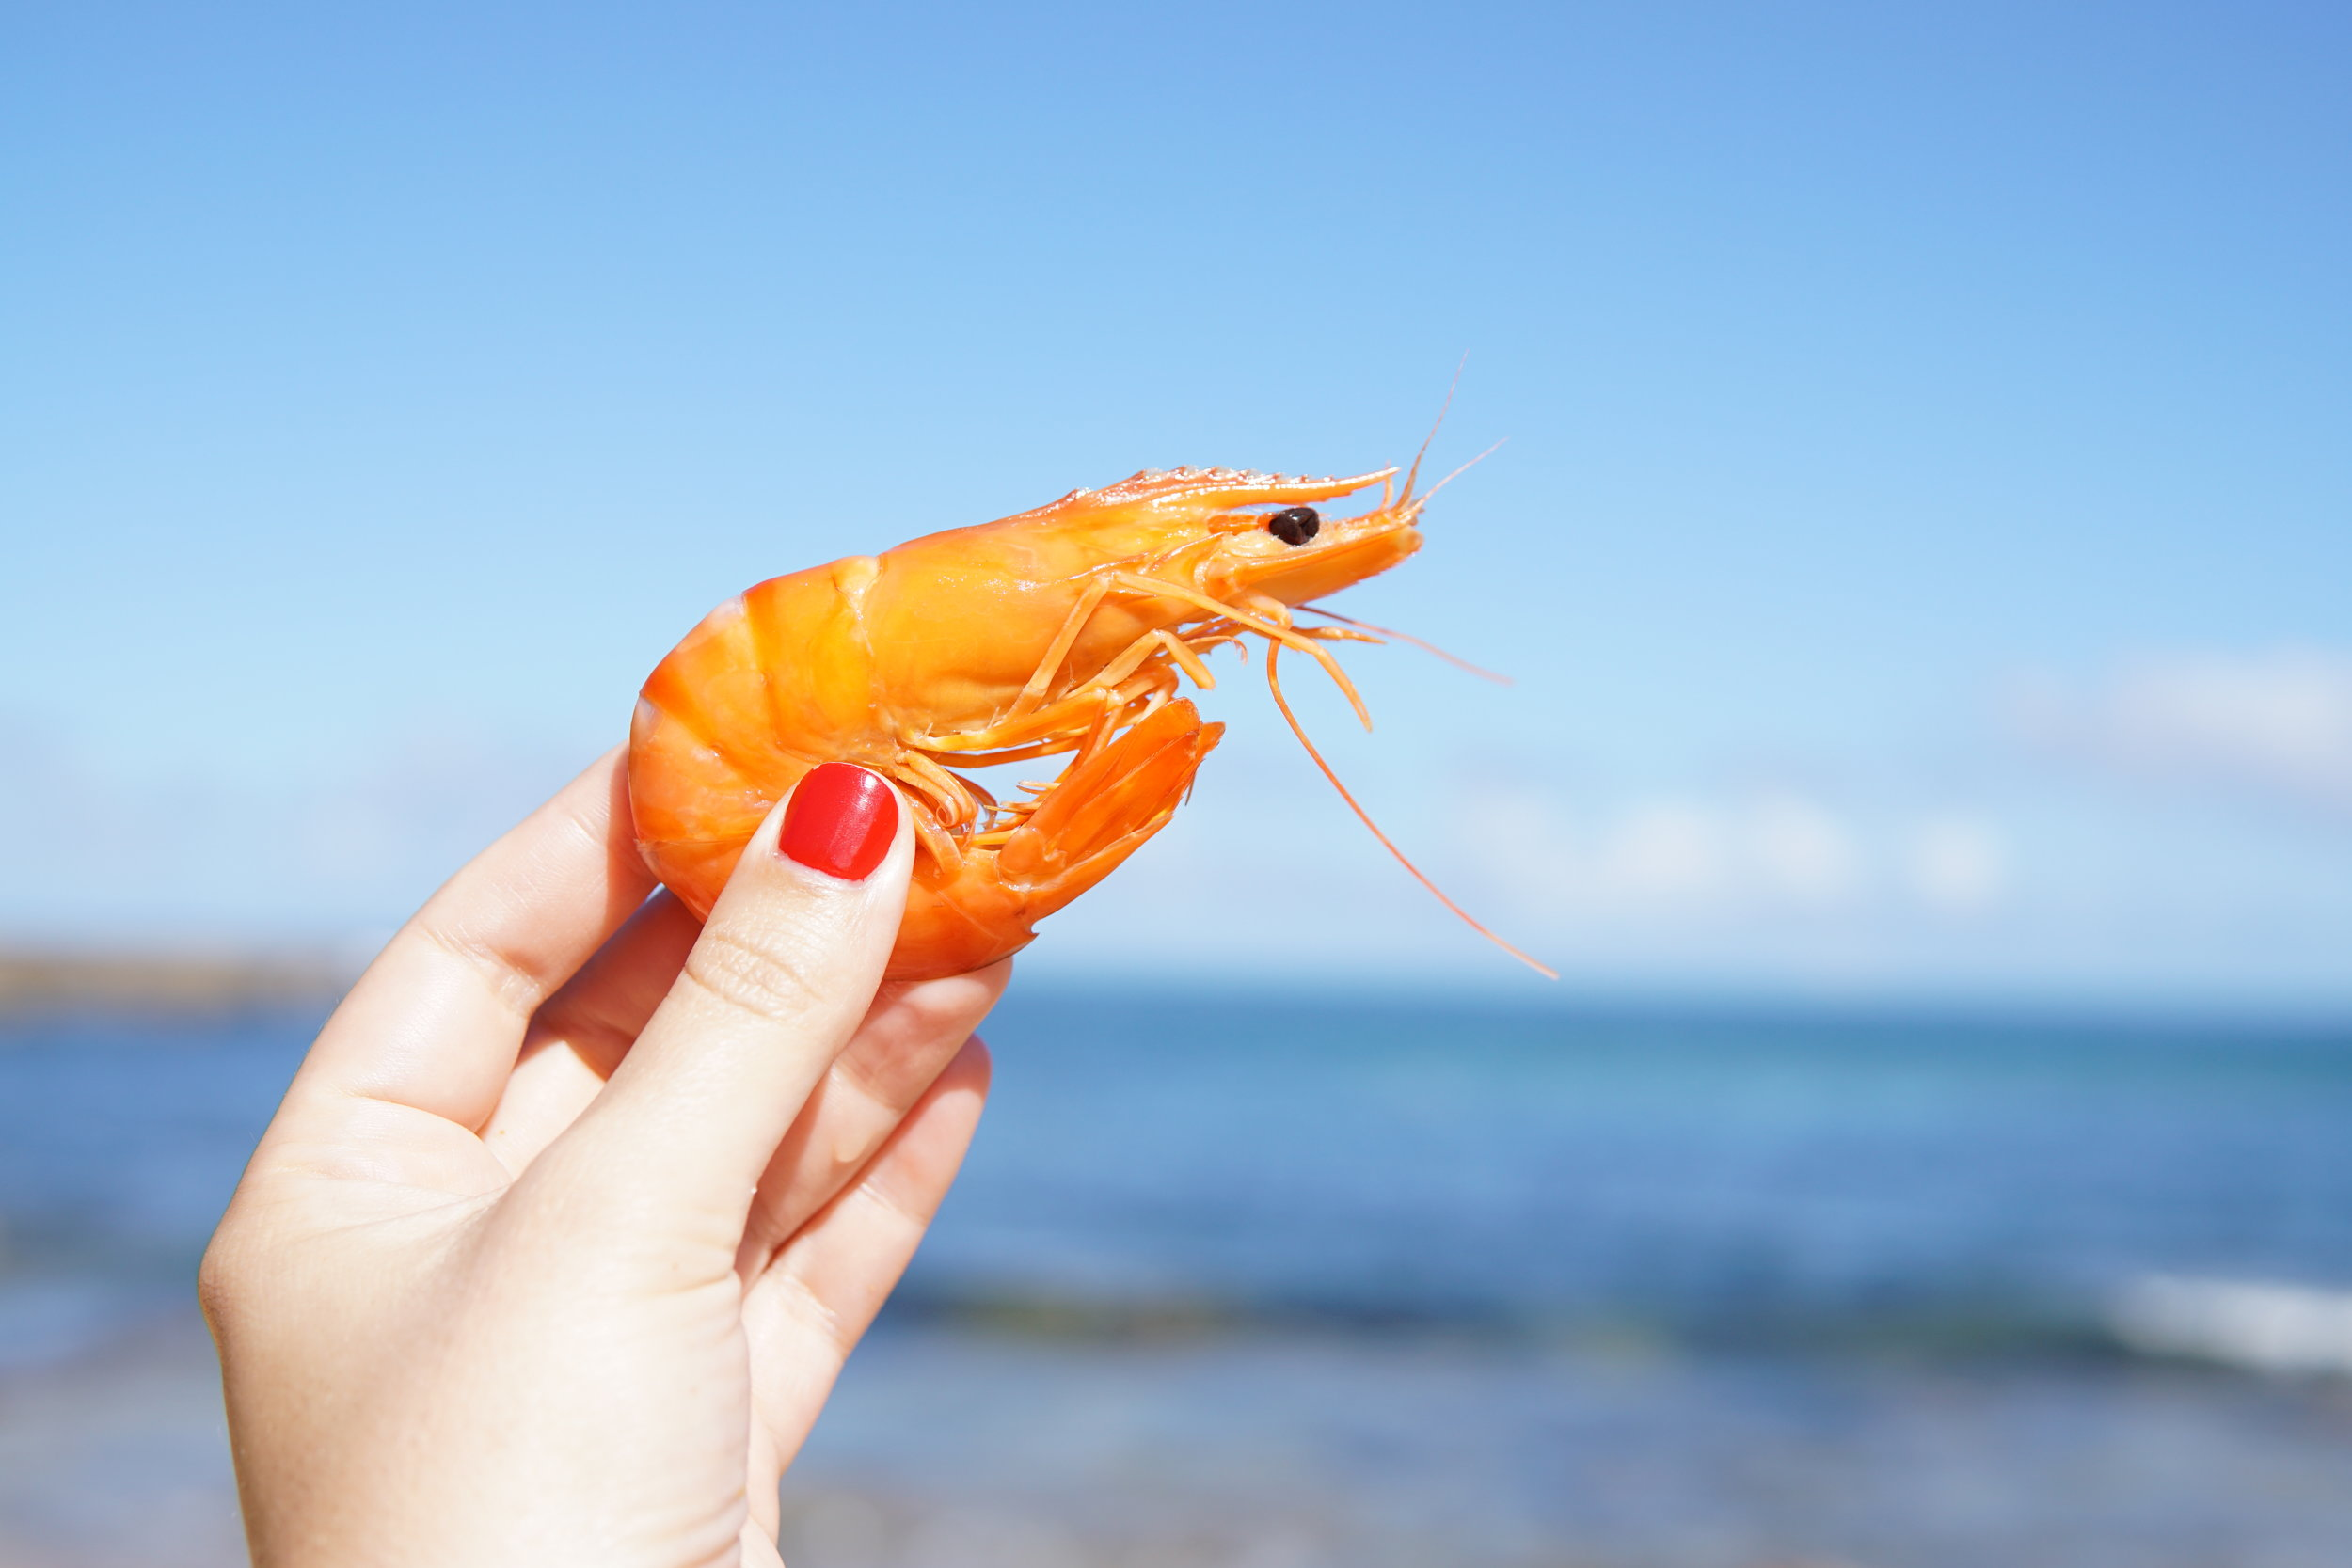 A prawn held aloft